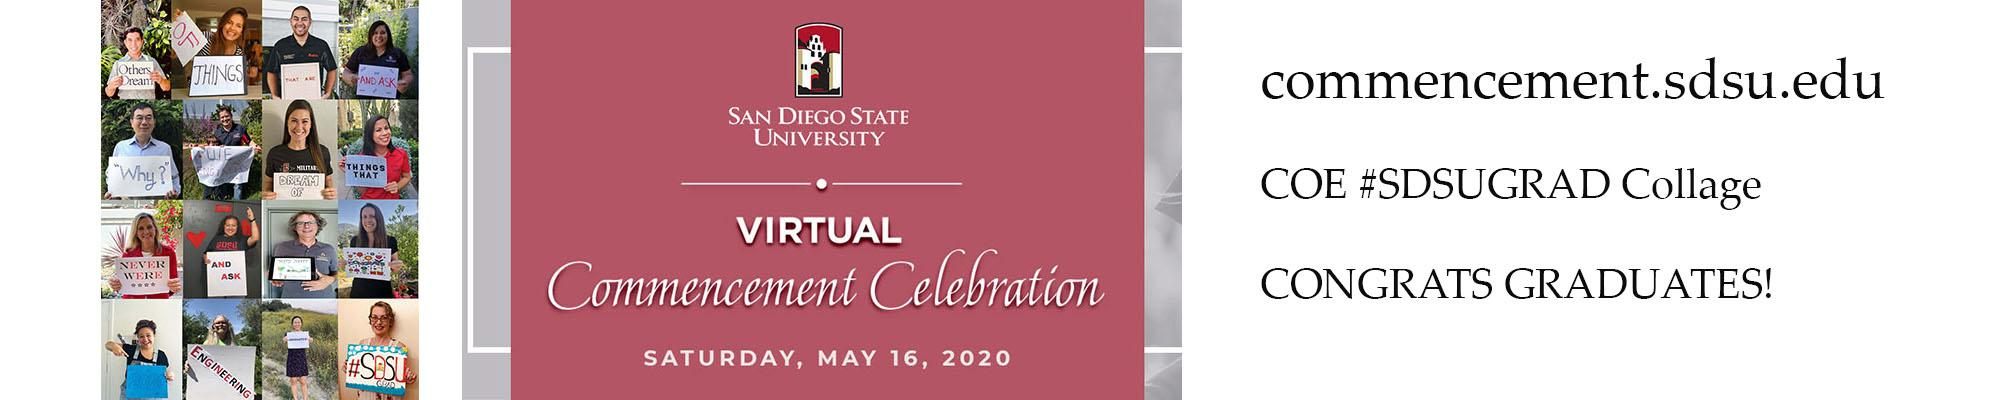 SDSU Virtual Commencement